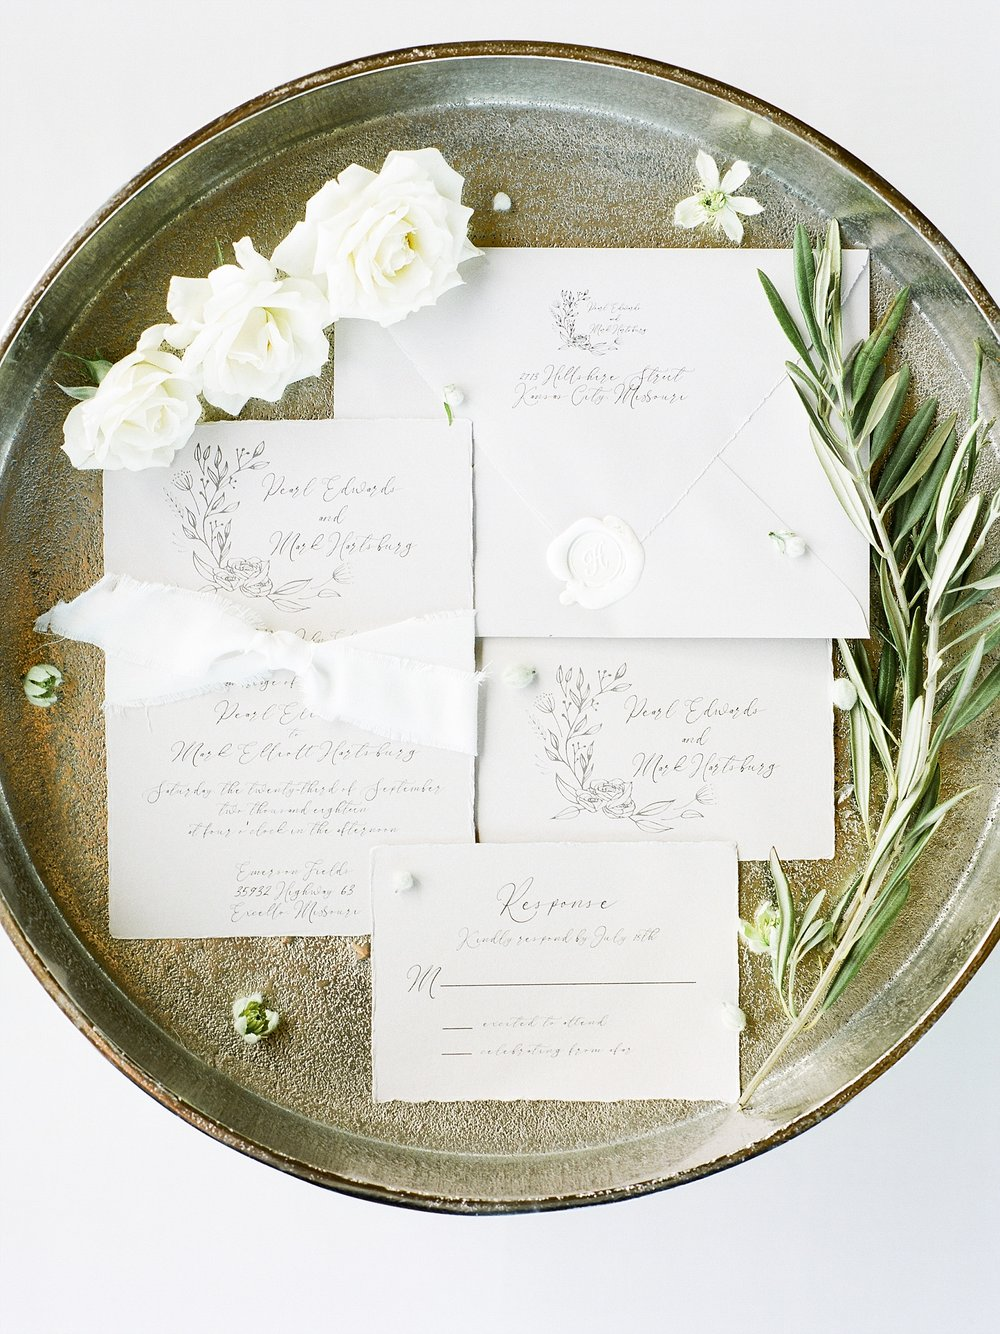 Textural Organic Wedding in All White Venue by Kelsi Kliethermes Wedding Photographer - Missouri, Midwest, and Destinations_0005.jpg